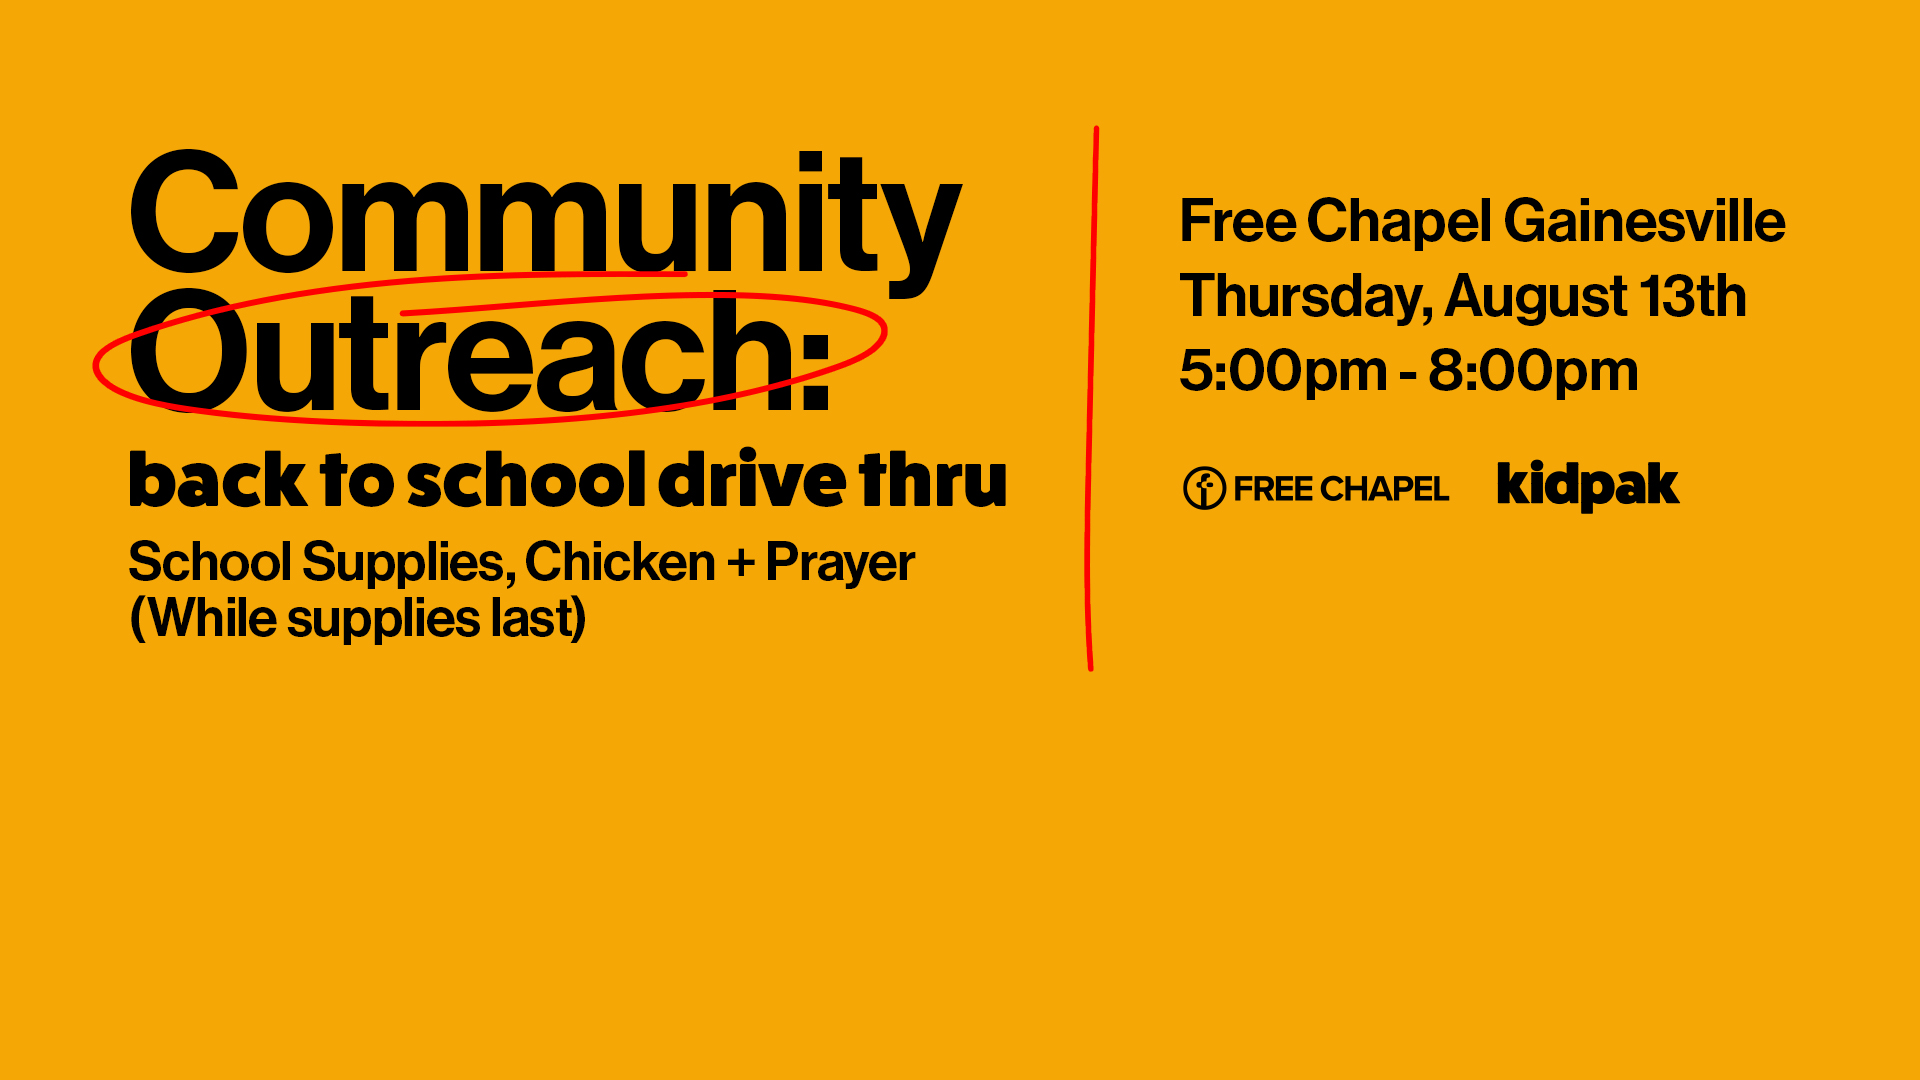 Back to School Drive Thru at the Gainesville campus